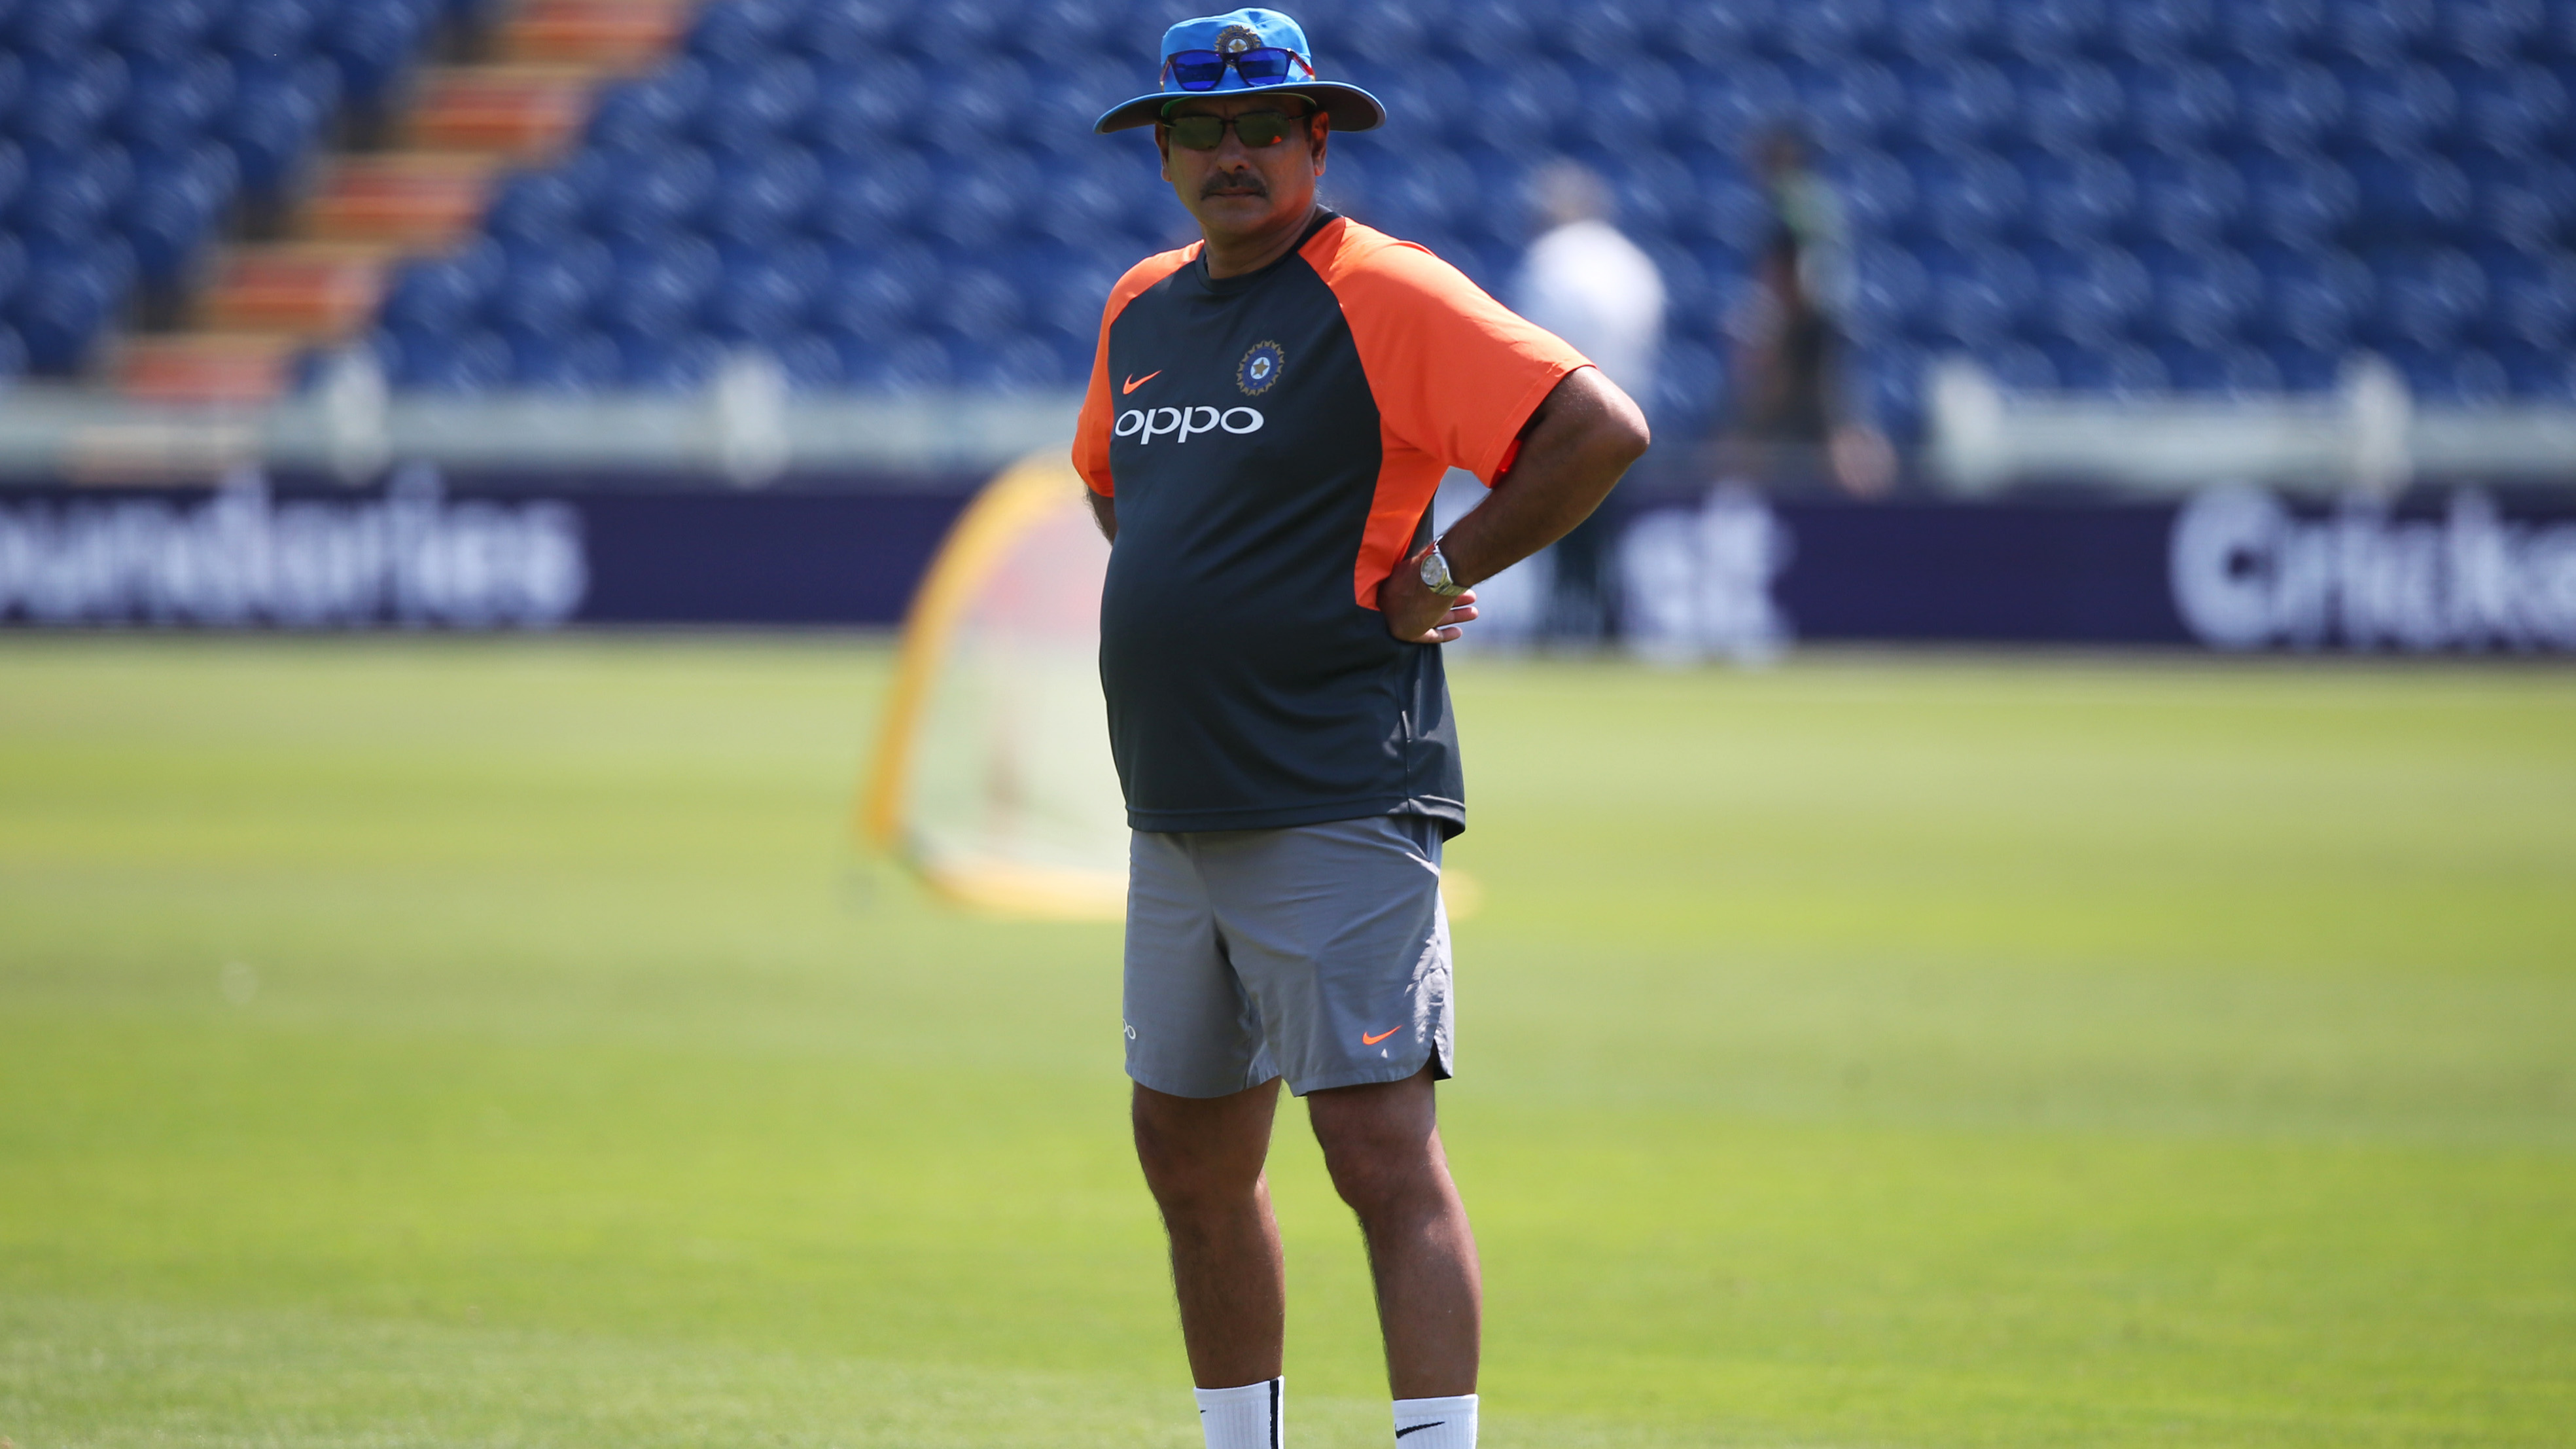 Eng v IND 2018: Unhappy with the outfield and pitch condition, Team India shorten warm-up match duration